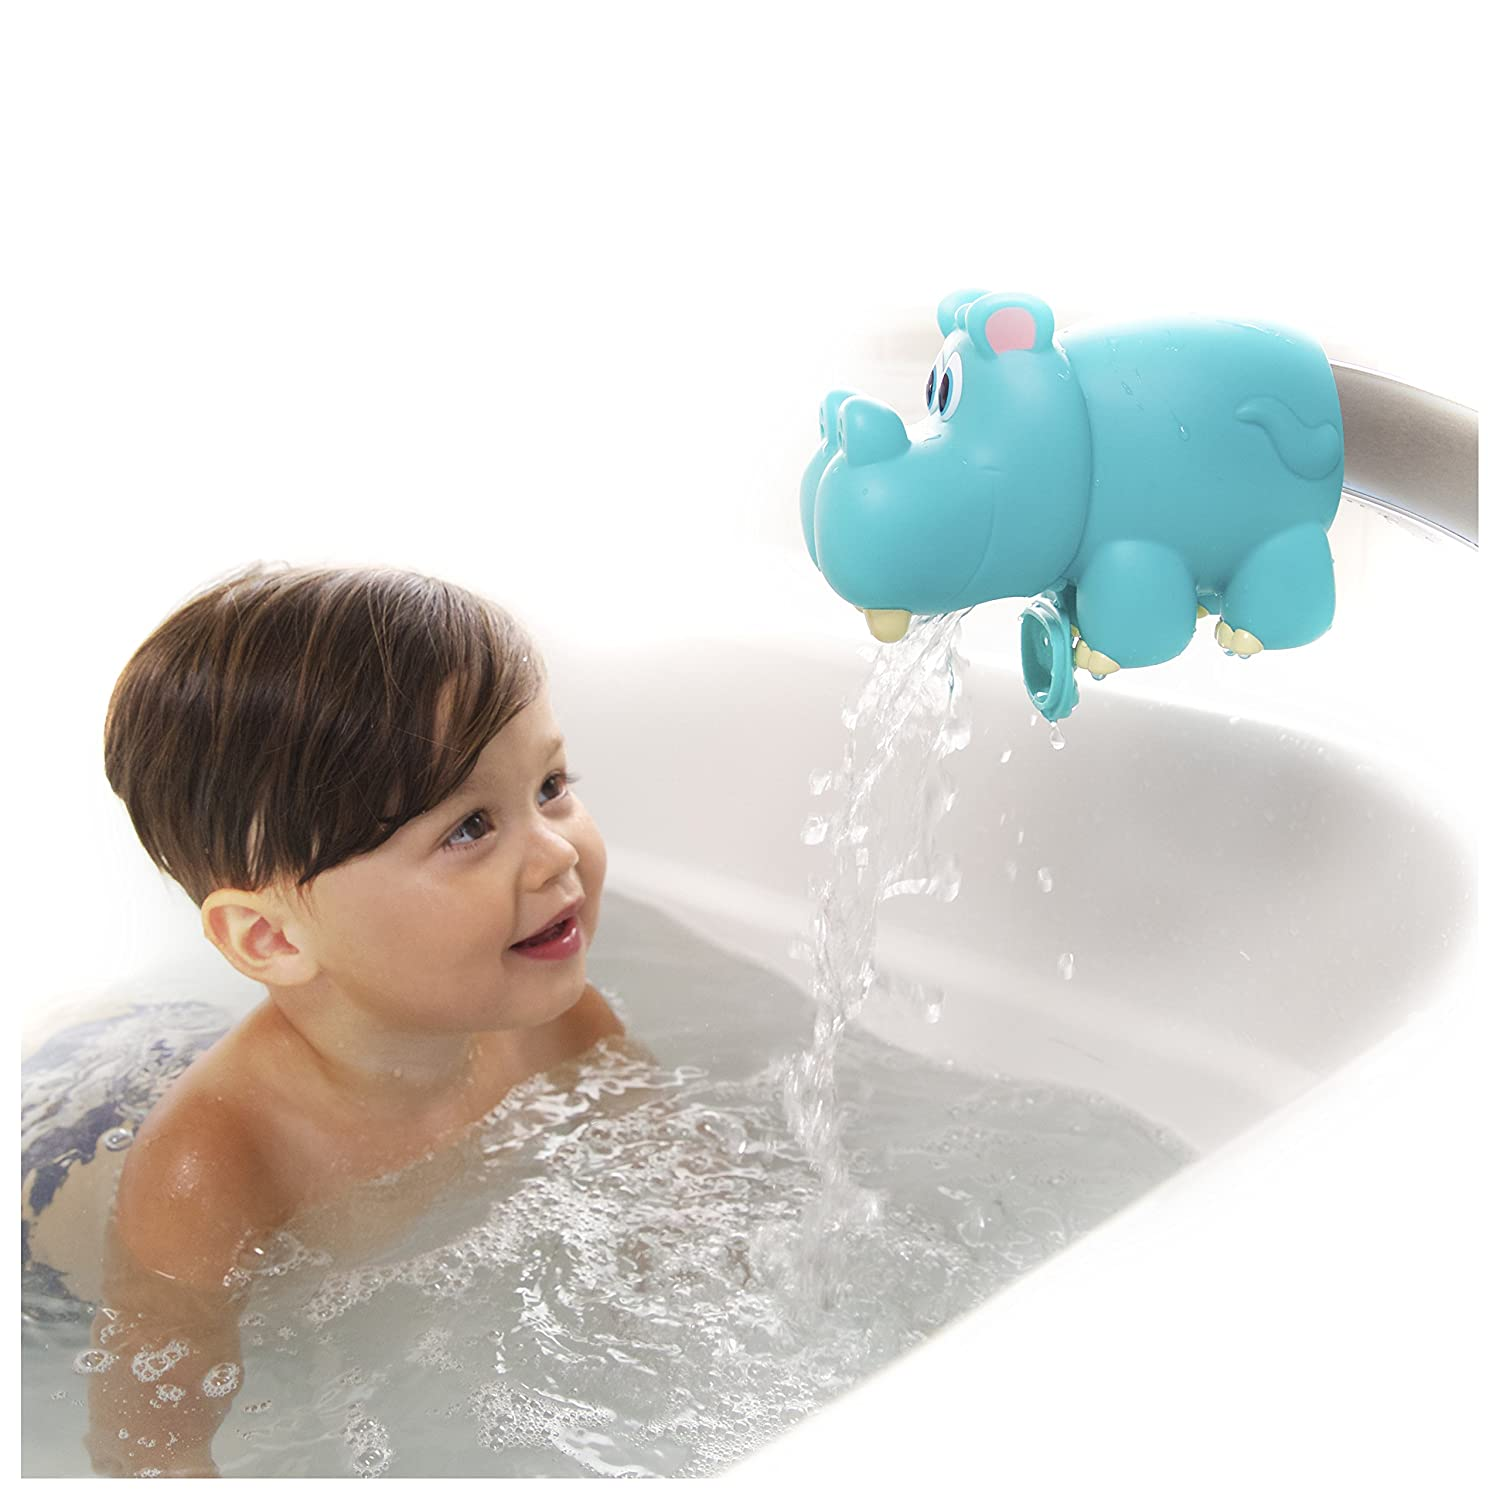 Nuby Hippo Water Spout Guard, Blue: Nuby: Amazon.ca: Toys & Games